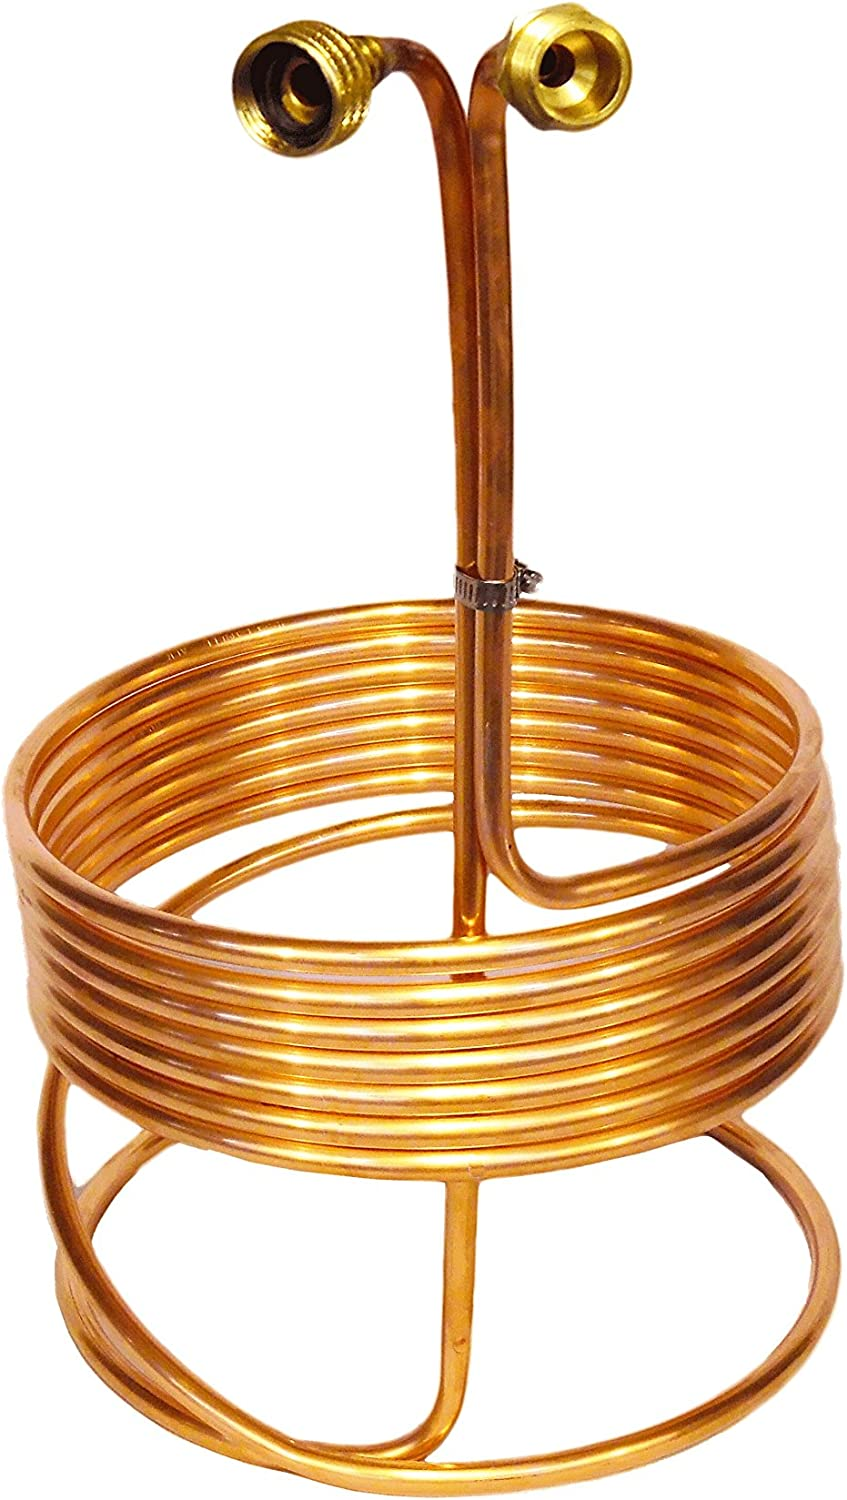 Immersion Wort Chiller w/Garden Hose Fittings